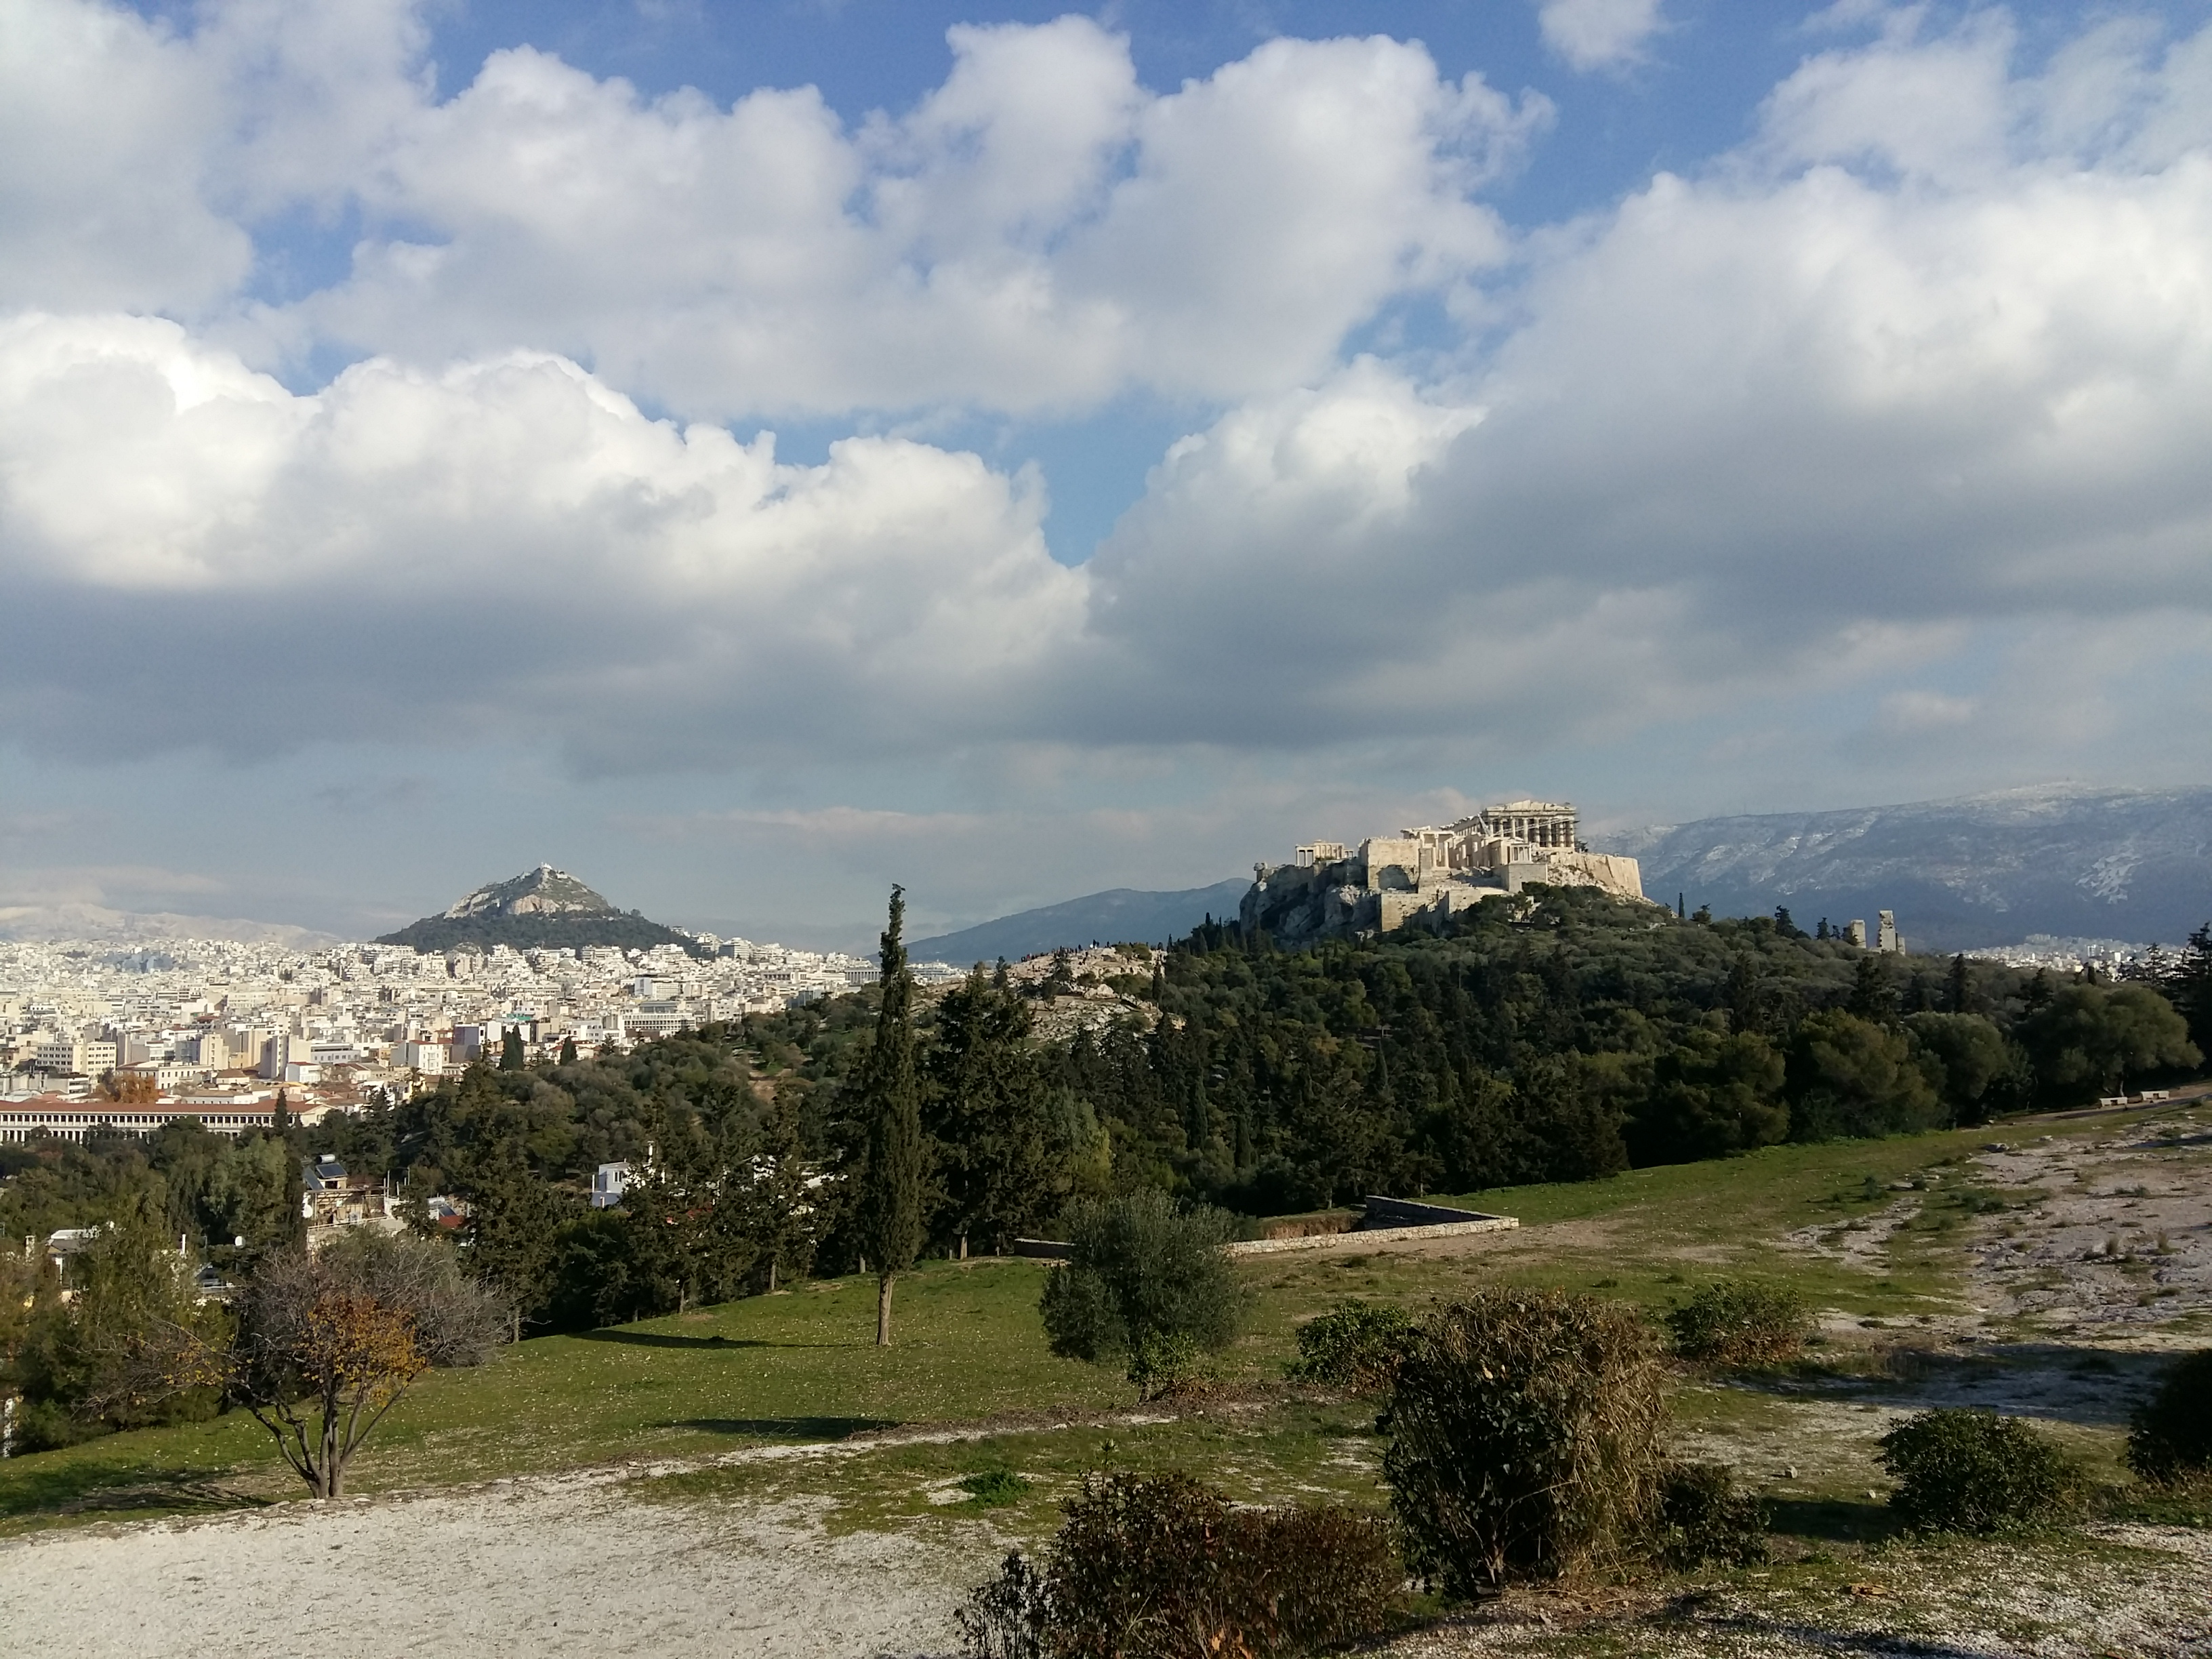 Walk around the ancient sites in Athens